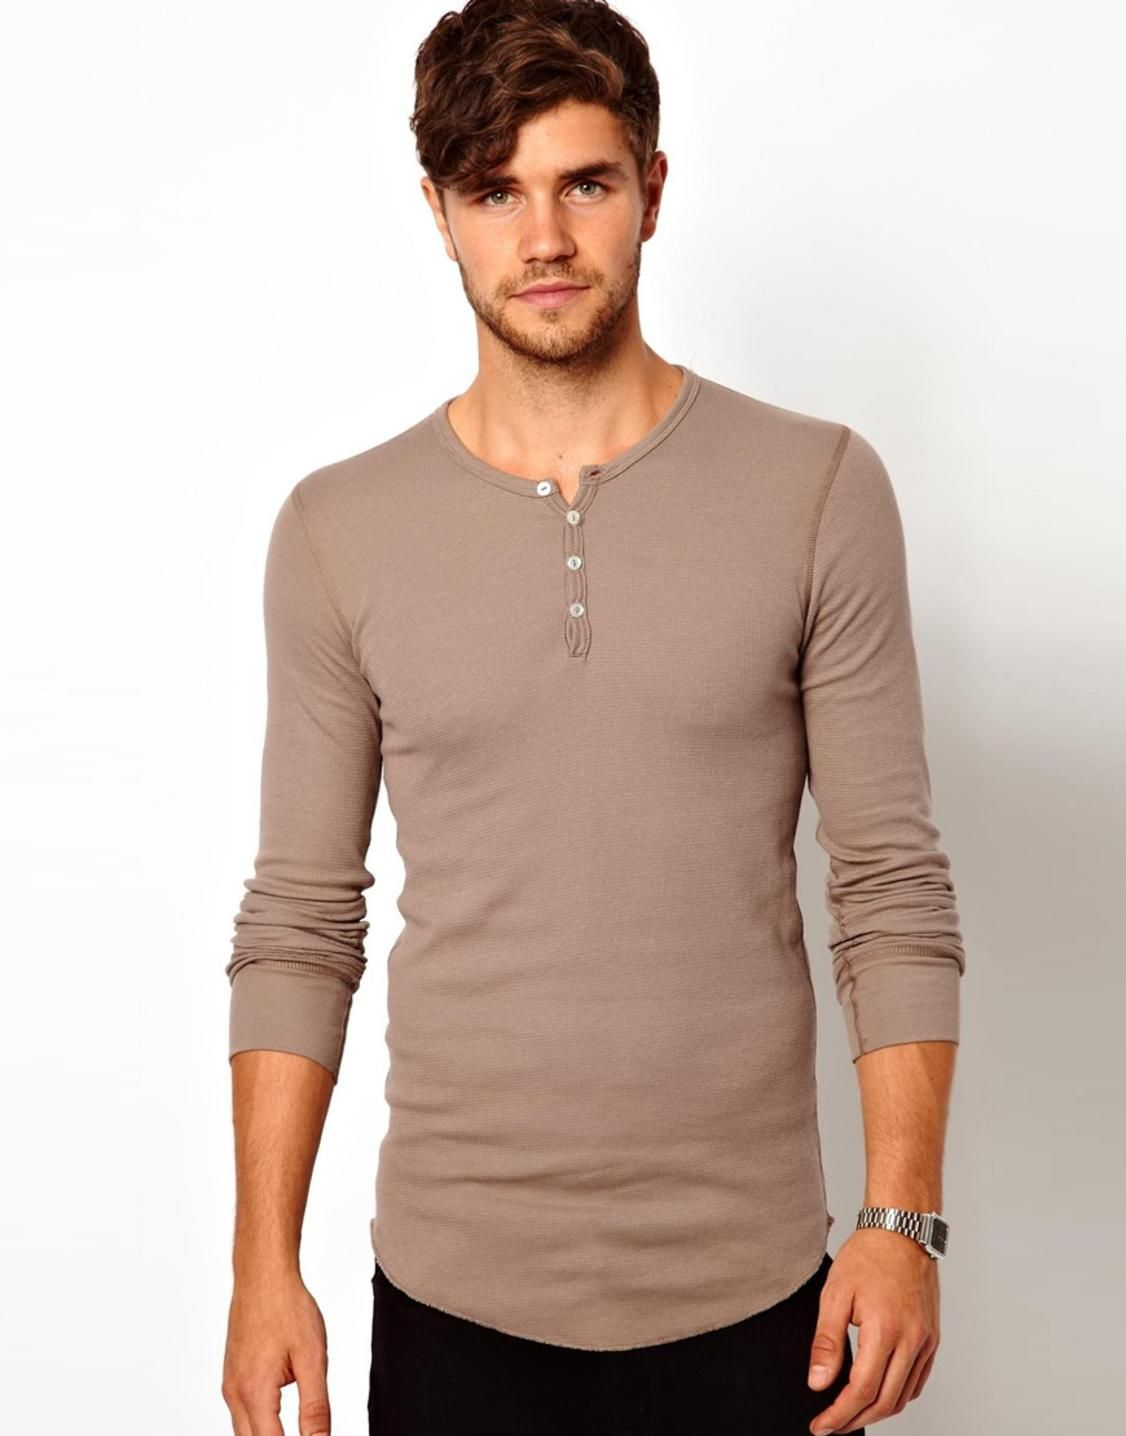 This is an example of a henley shirt, which is a collarless ...